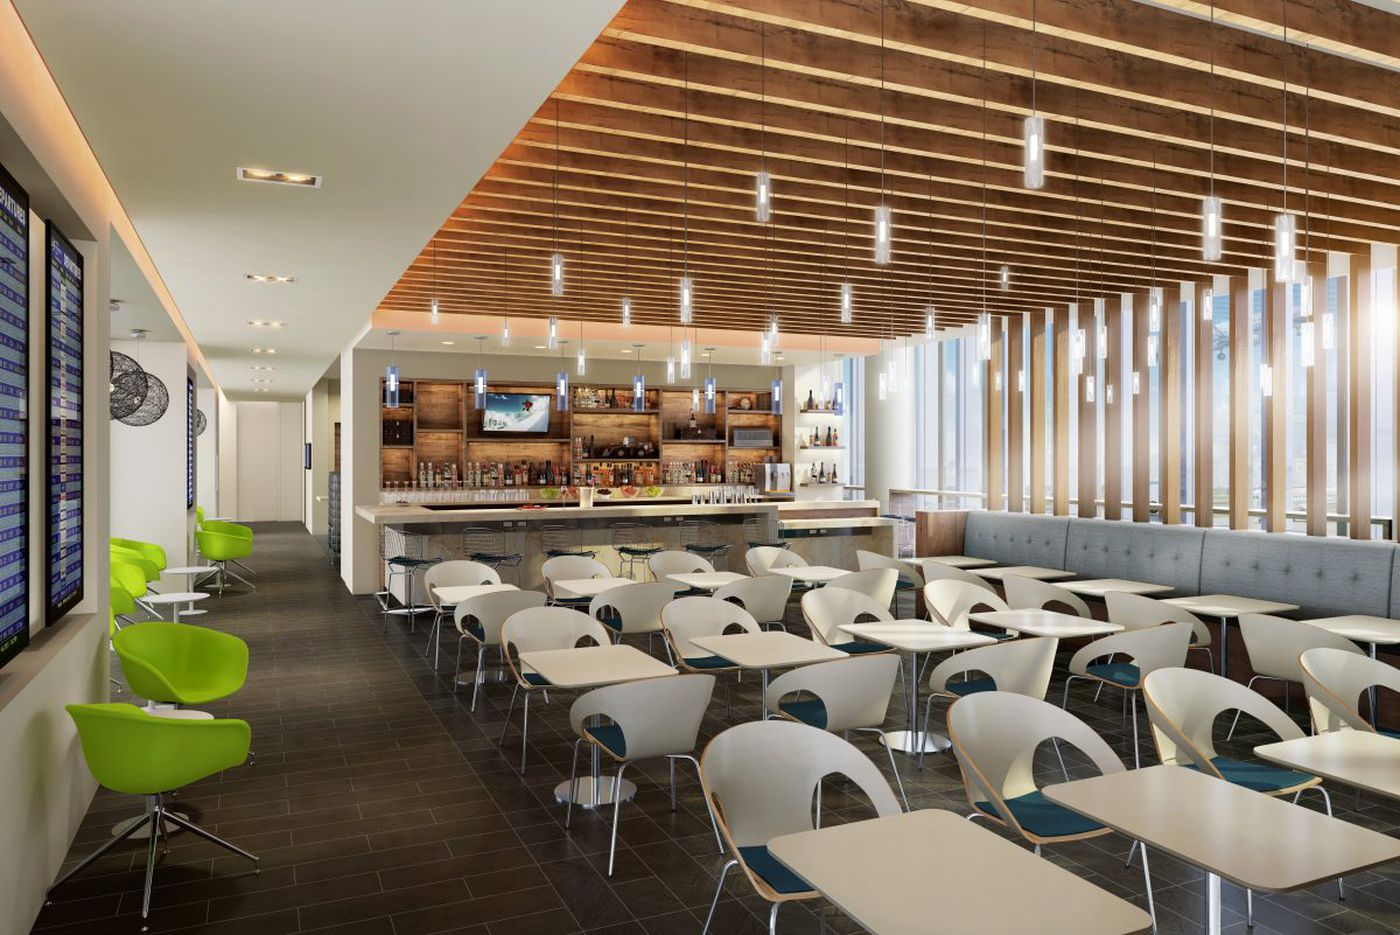 Top chef Solomonov will design menu for new American Express lounge at PHL